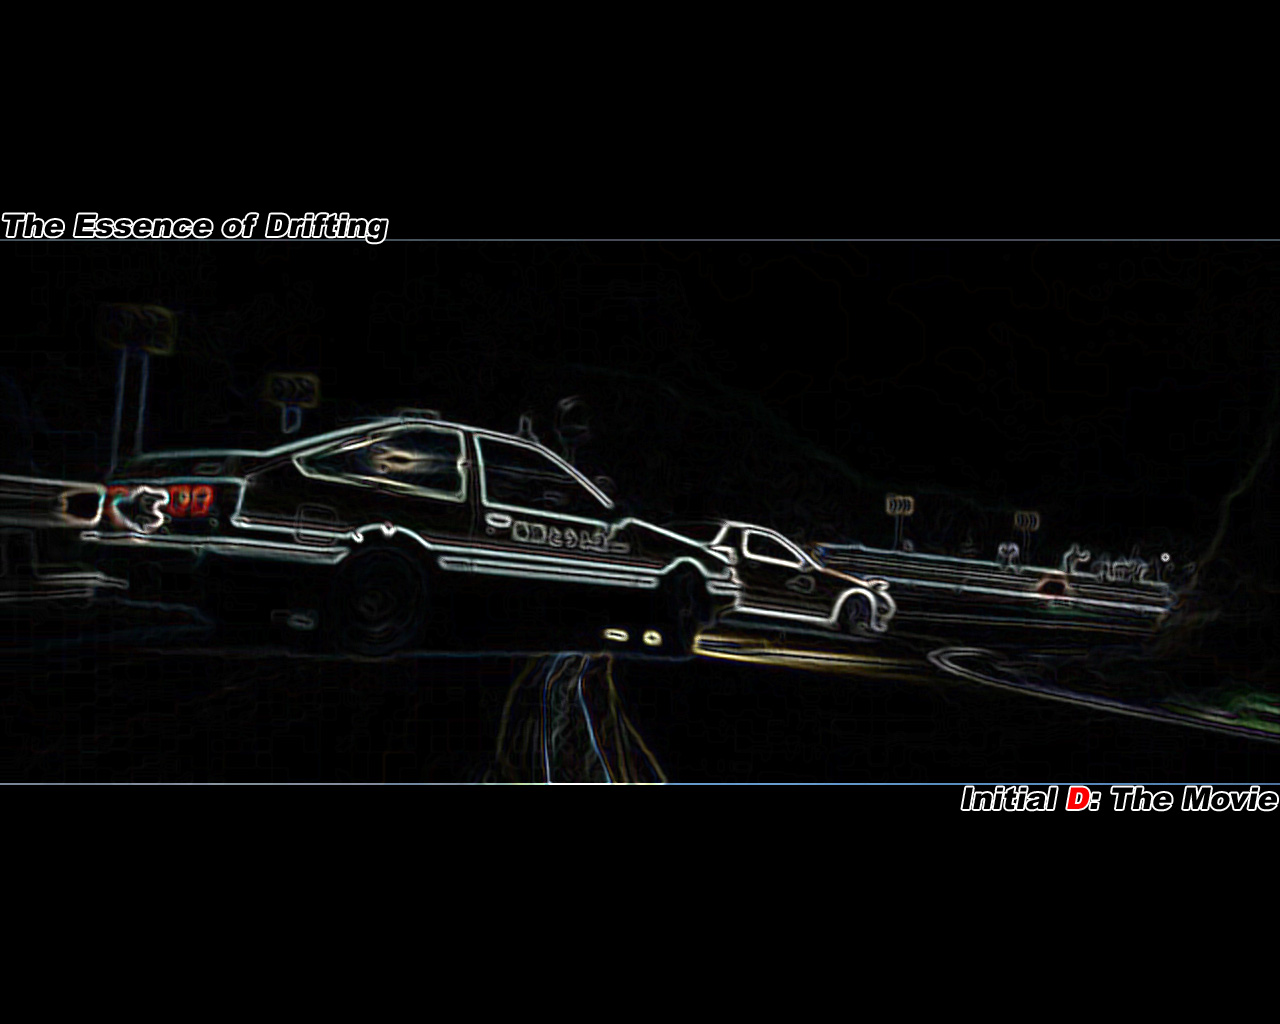 Initial D Hd Posted By Ethan Simpson